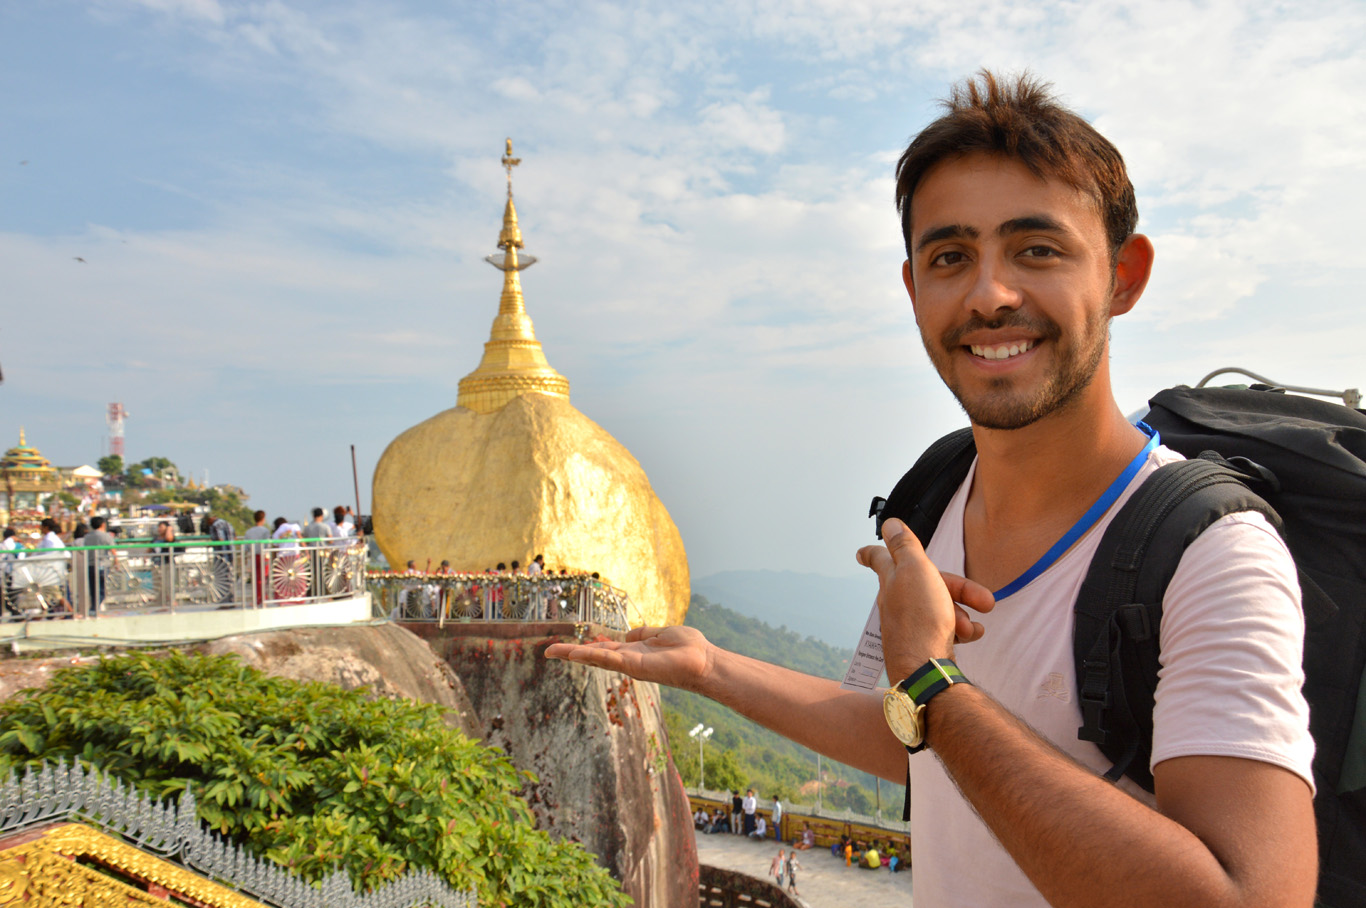 At the Golden Rock temple